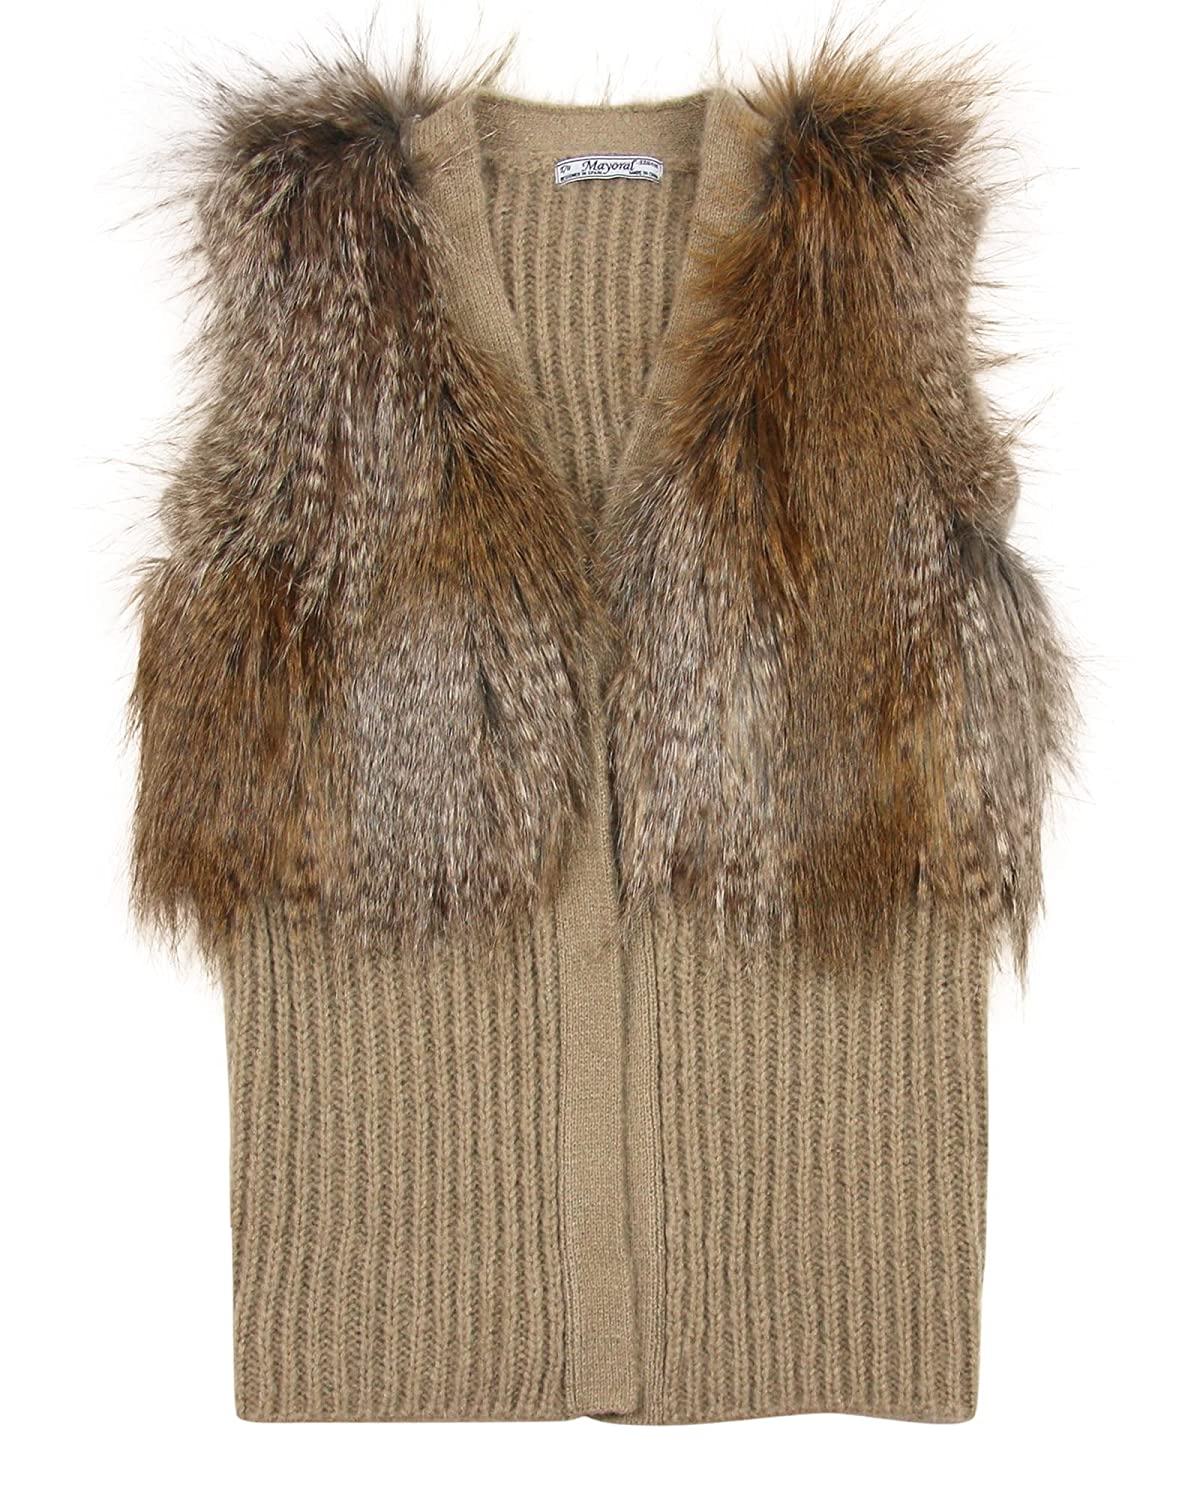 Mayoral Junior Girl's Rib Knit and Fur Vest, Sizes 8-16